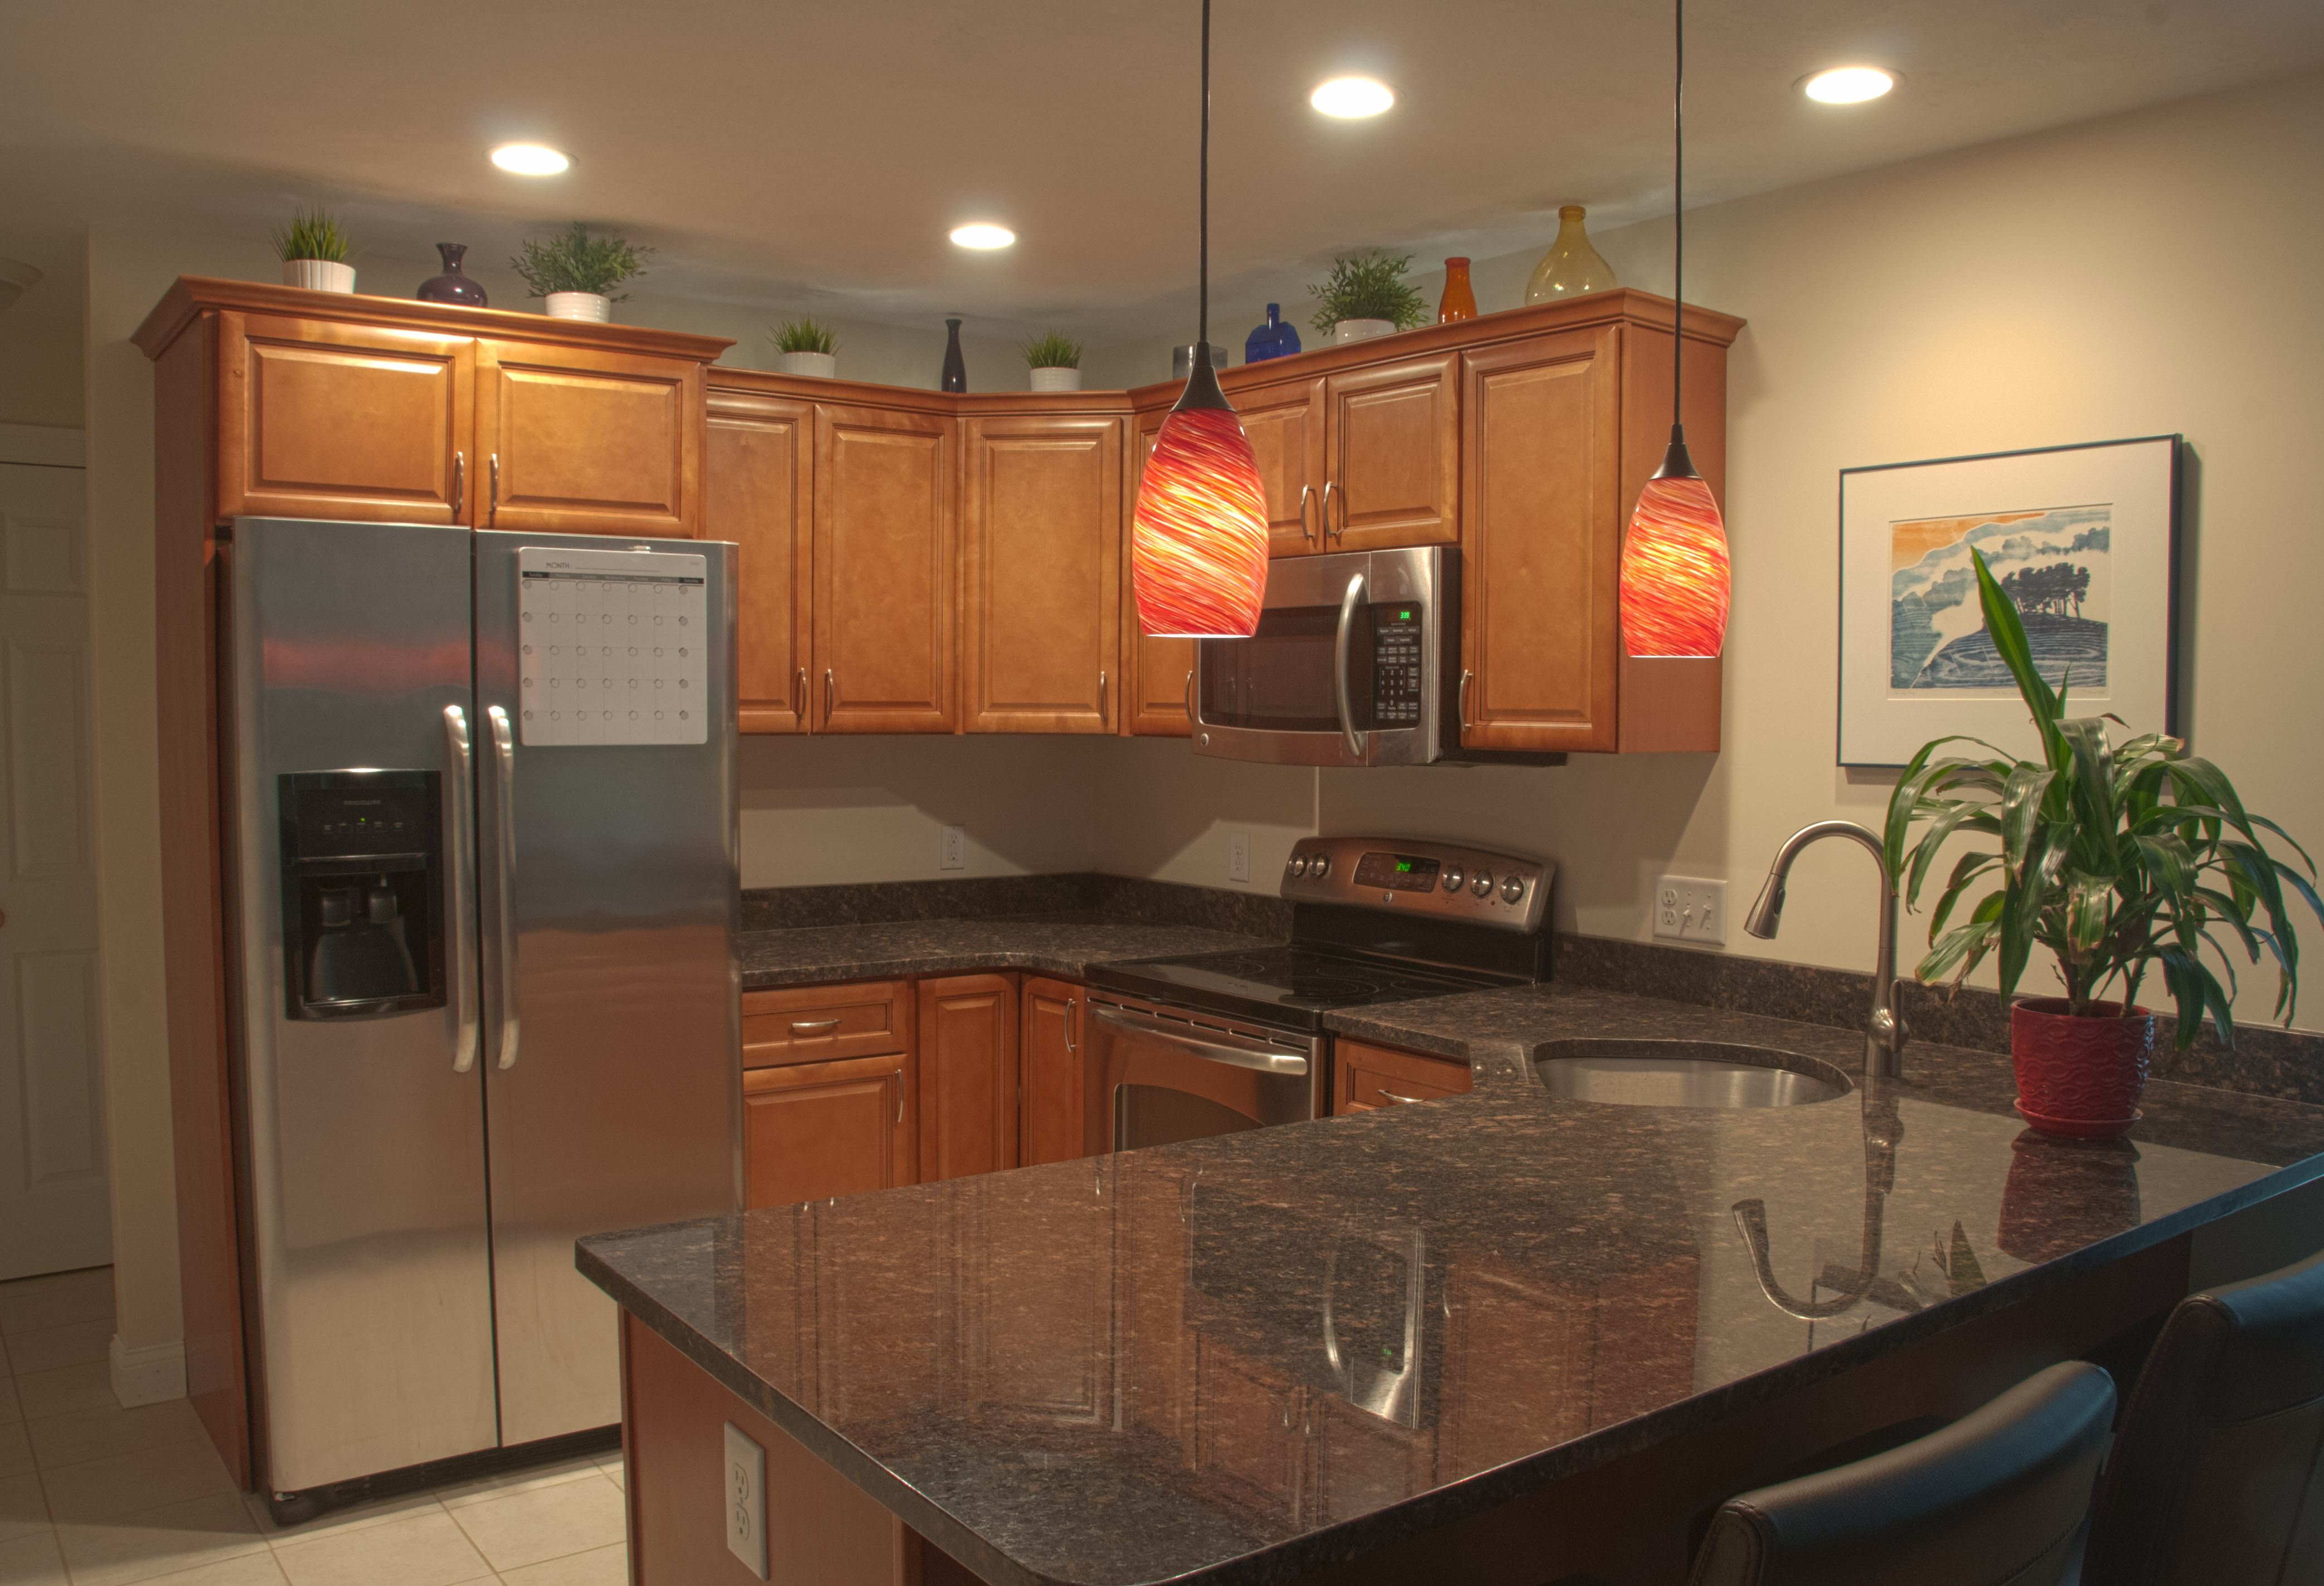 Led Kitchen Lights Ceiling Ability To Add Some Customized Features Download